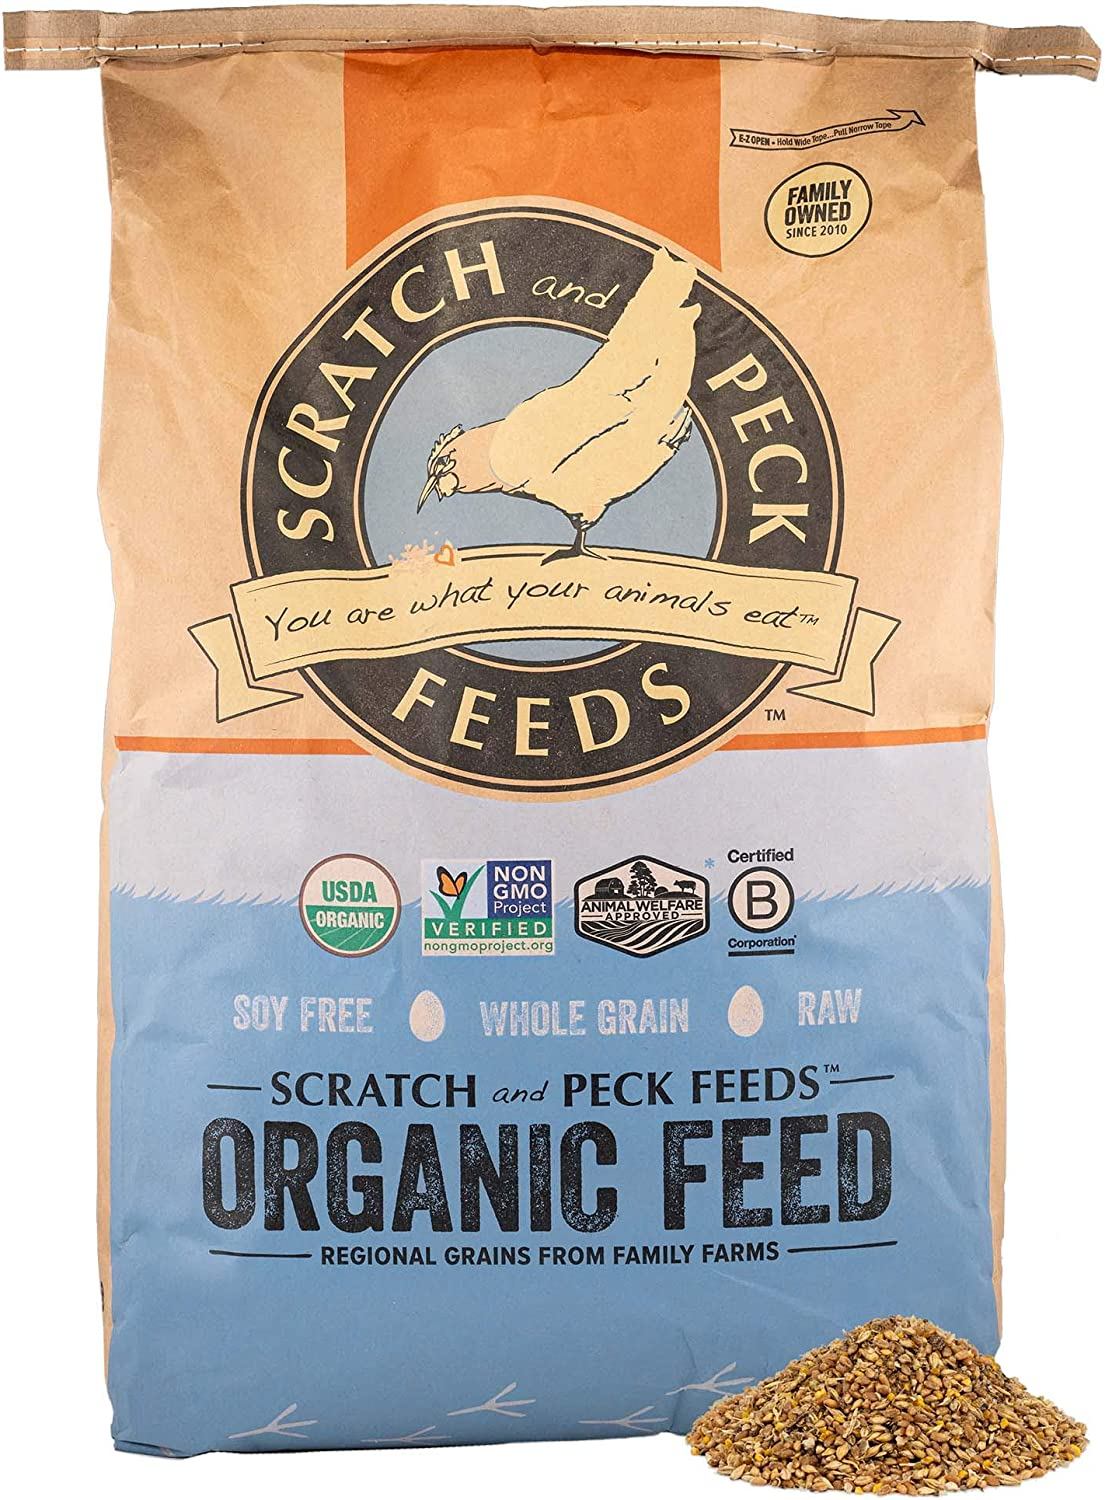 Scratch and Peck Feeds Organic Layer Feed with Corn for Chickens and Ducks - Non-GMO Project Verified and Soy Free